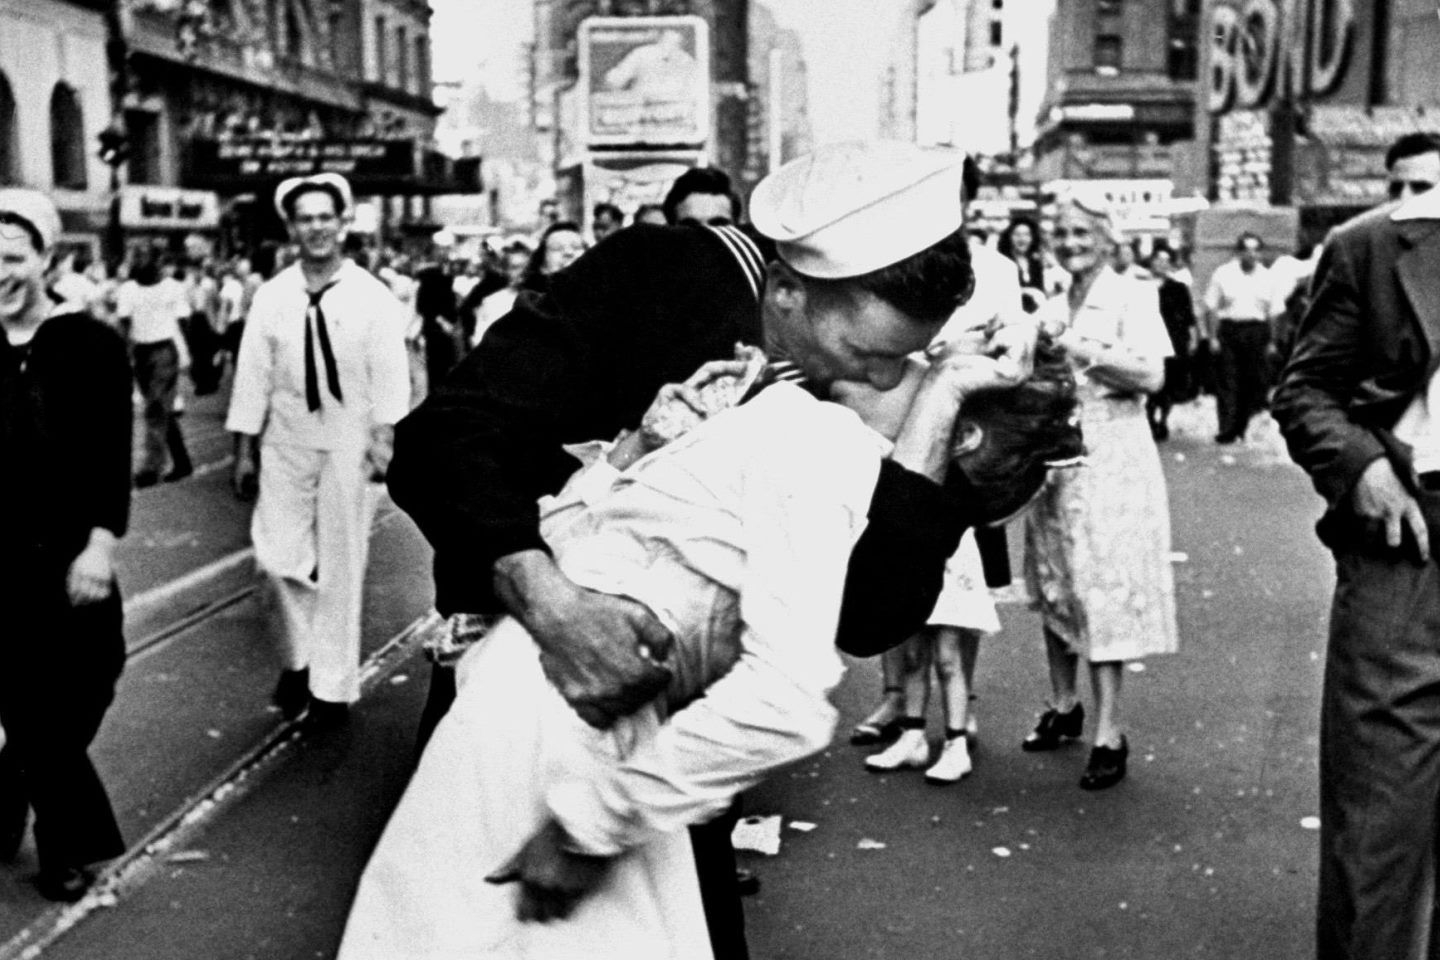 Sailor Kissing in Time Square WWII Ends